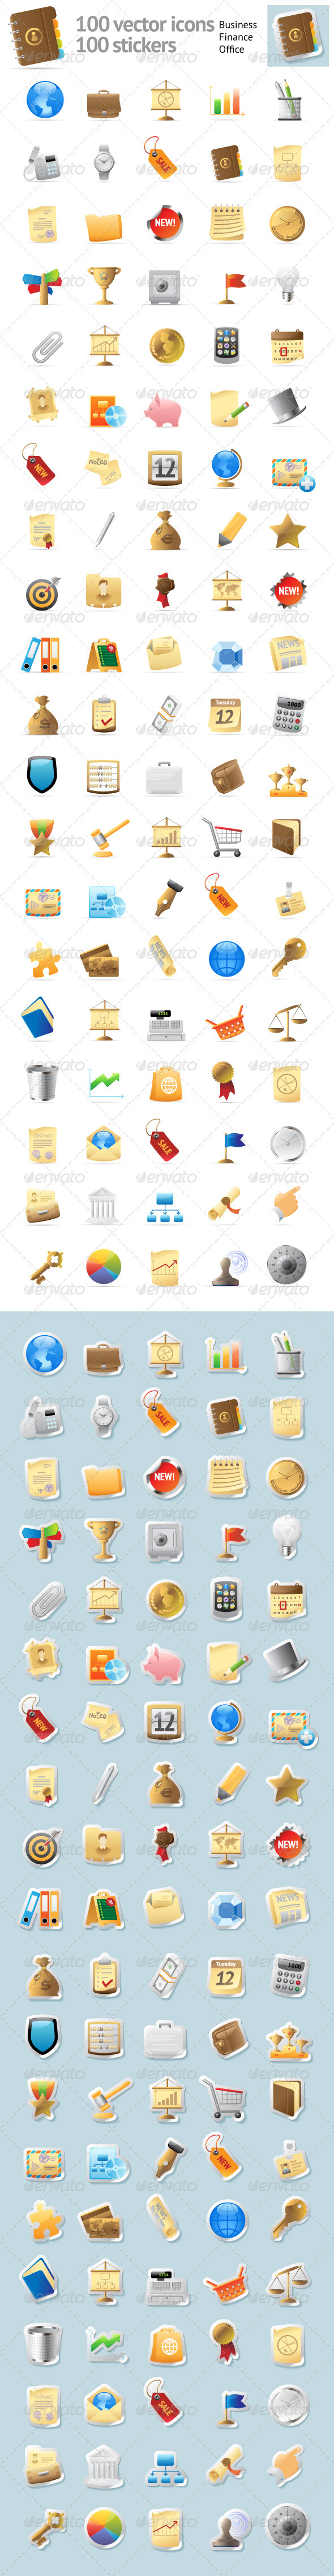 100 Icons For Business - Business Icons